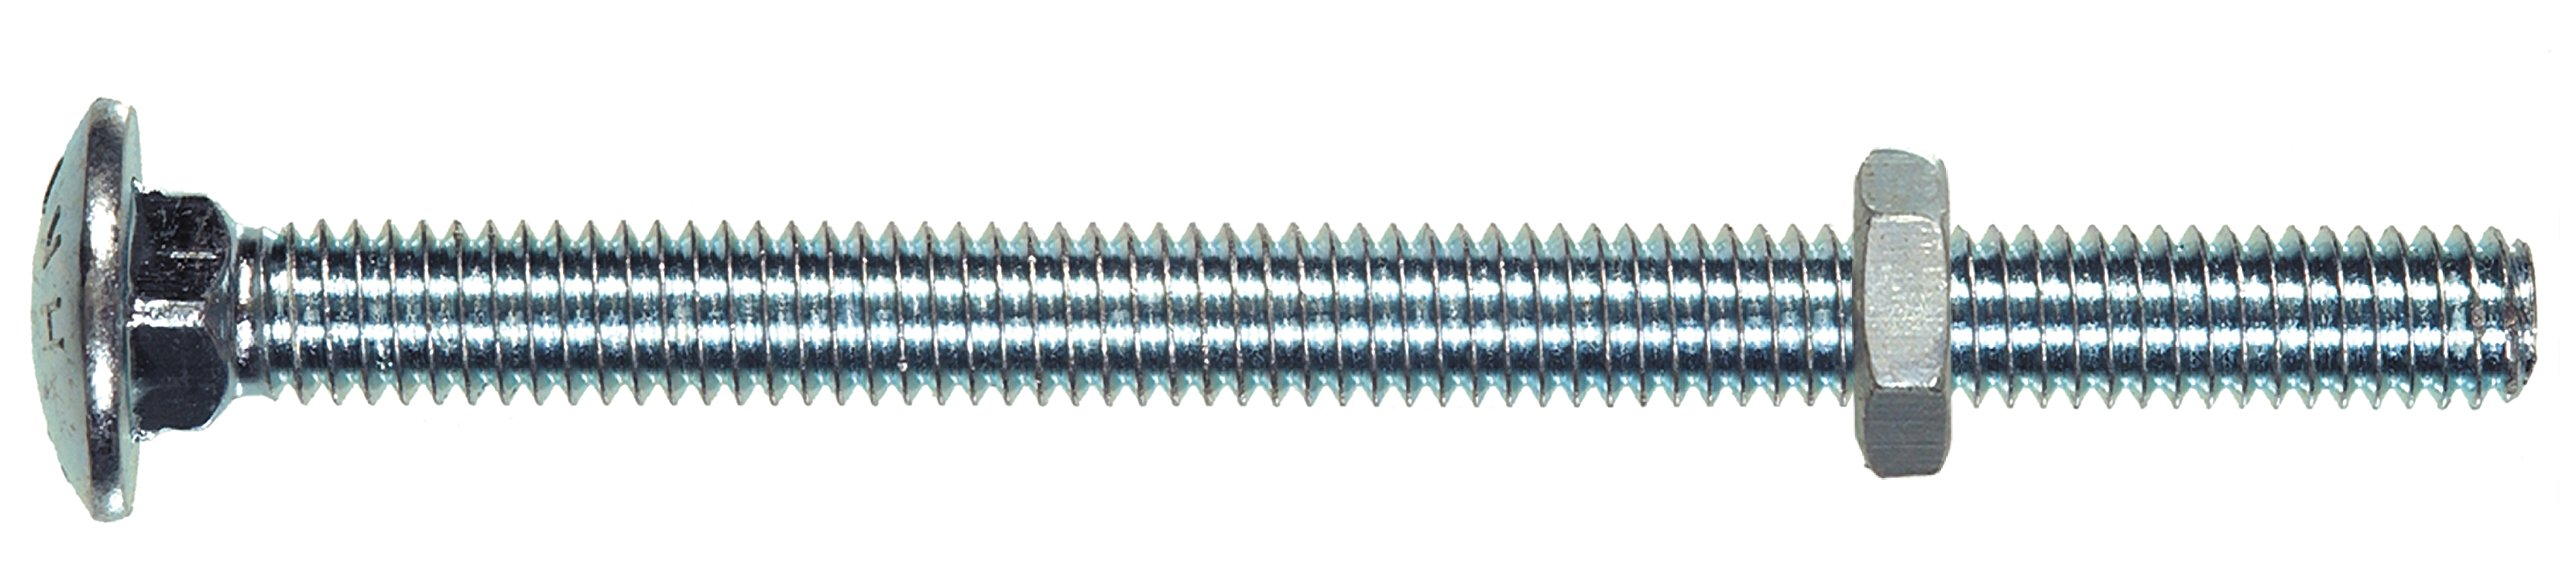 Hillman 2154 Carriage Bolt with Nut (3/16'' W x 4'' L) Steel, Zinc-plated, Silver, 25-Pack